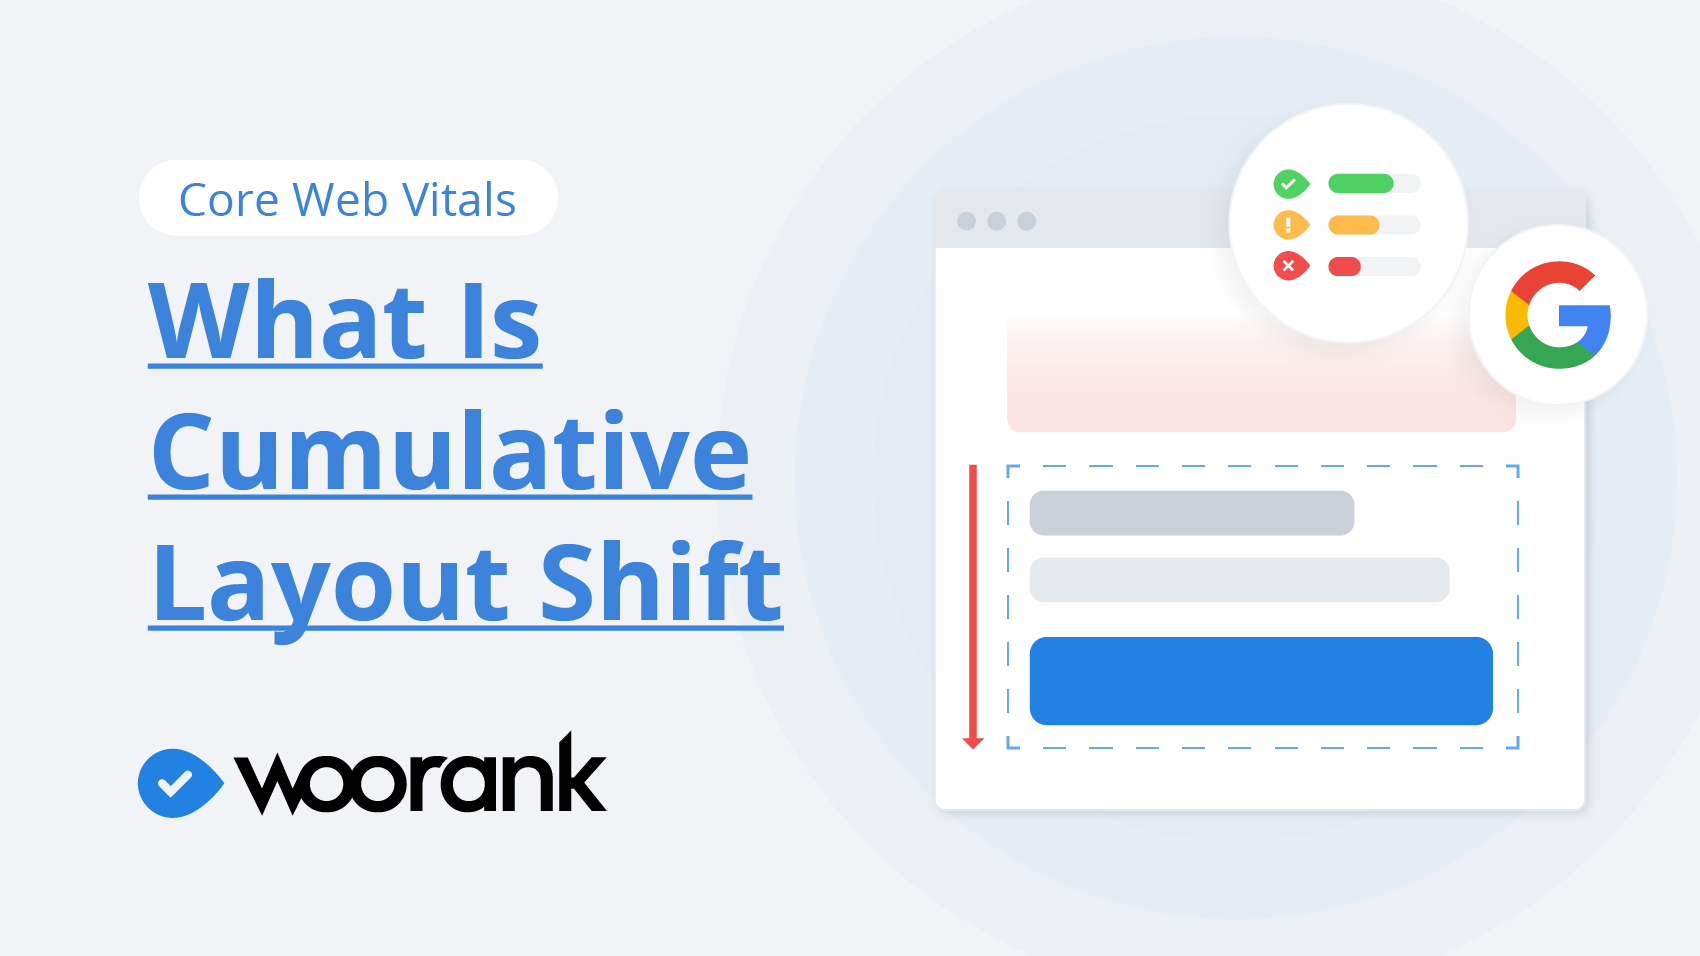 Core Web Vitals: What Is Cumulative Layout Shift?